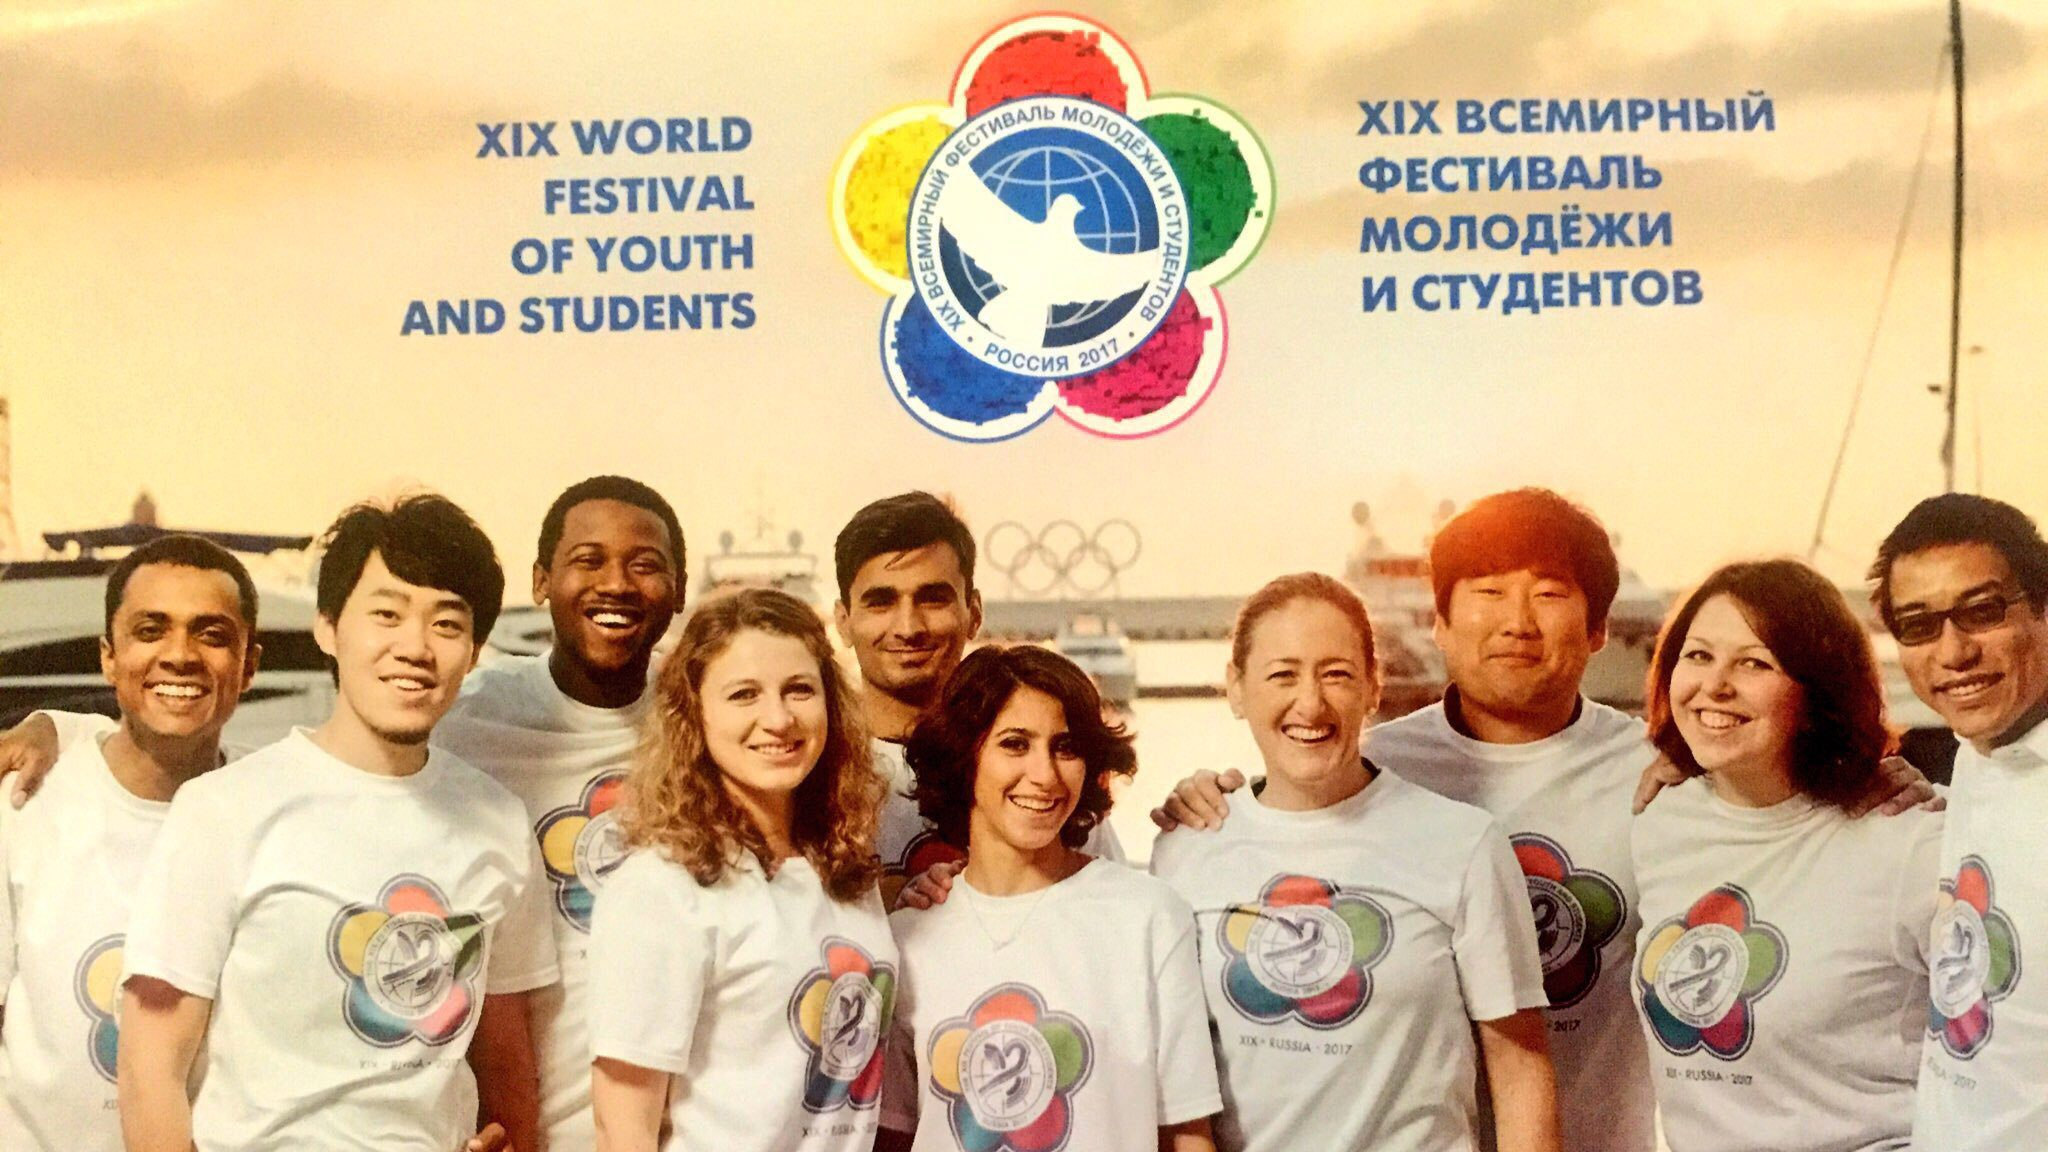 XIX World Festival of Youth and Students 2017 in Sochi, Russia (Funded) –  Opportunities For Africans